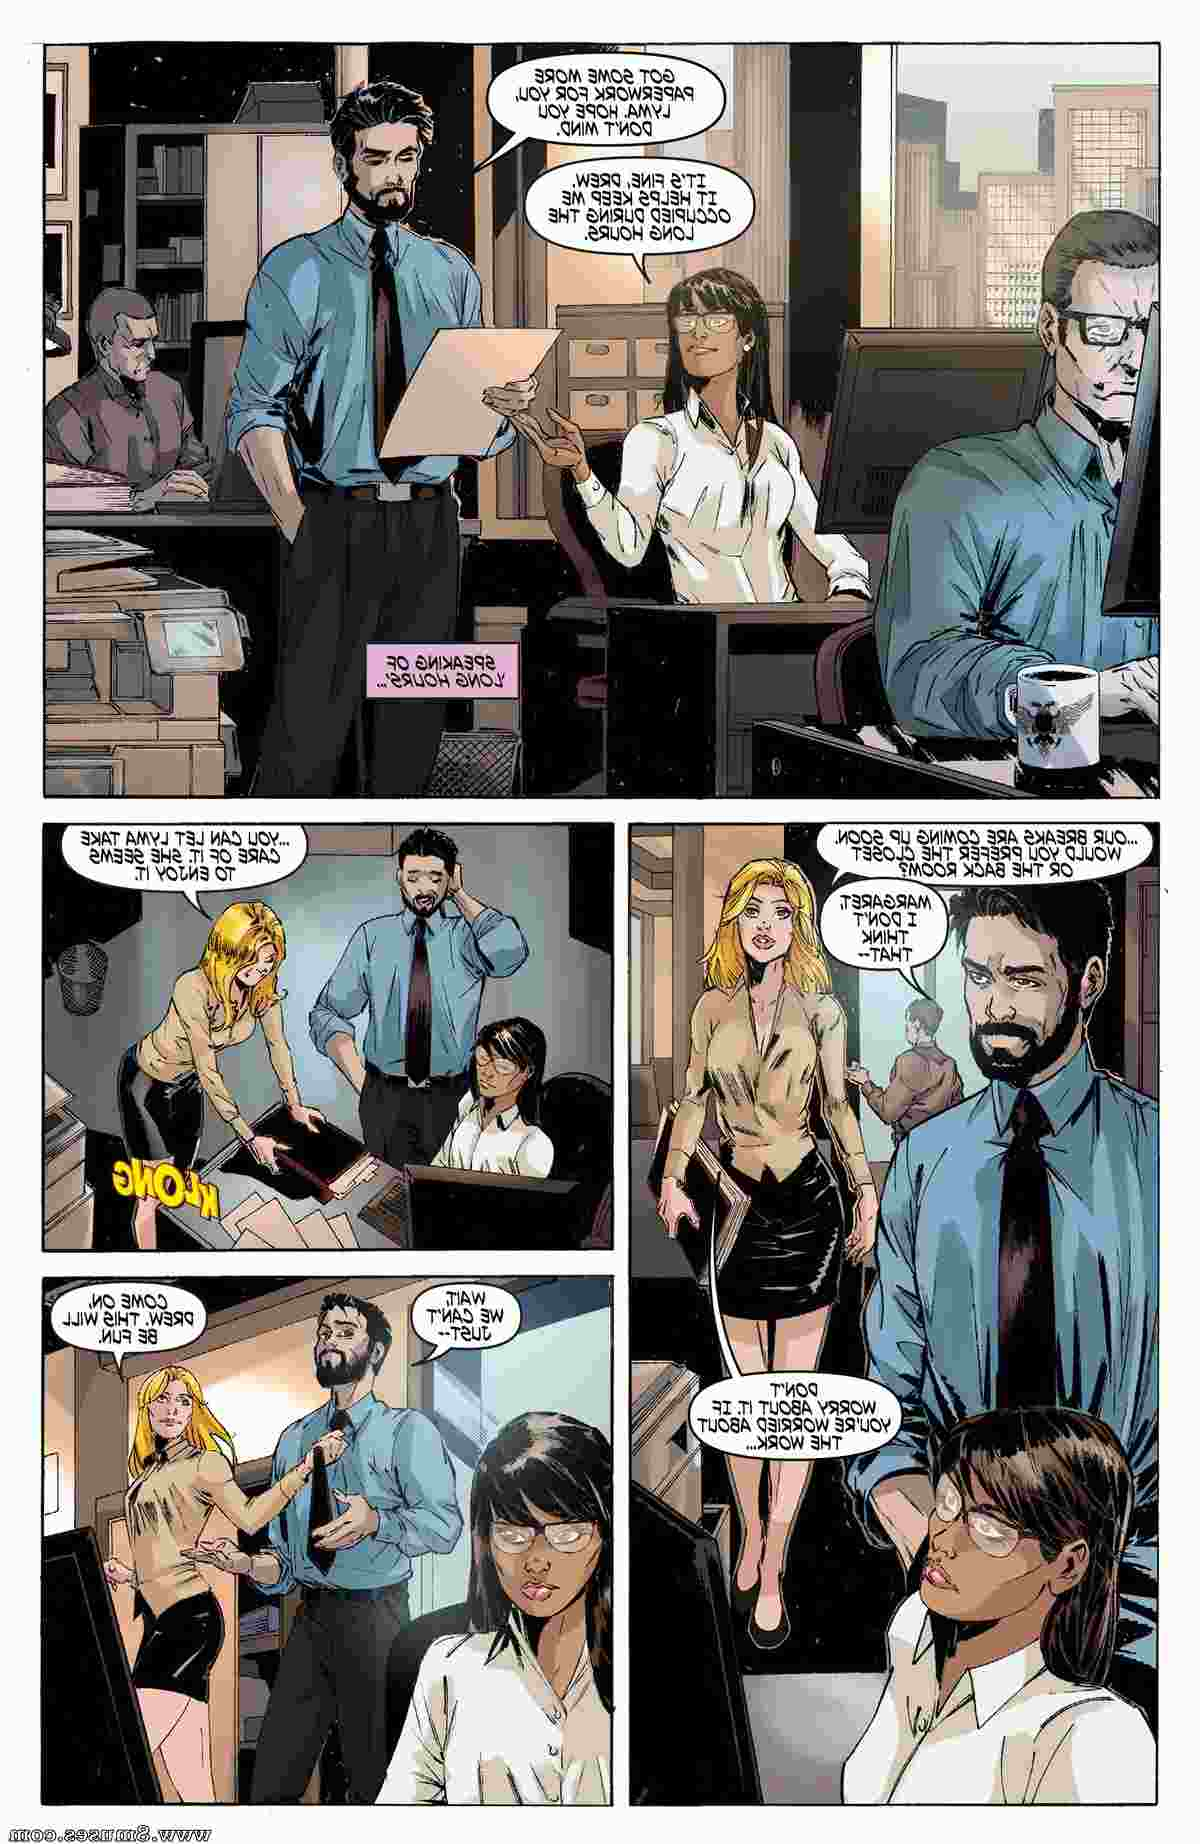 MuscleFan-Comics/Leveling-The-Field Leveling_The_Field__8muses_-_Sex_and_Porn_Comics_3.jpg